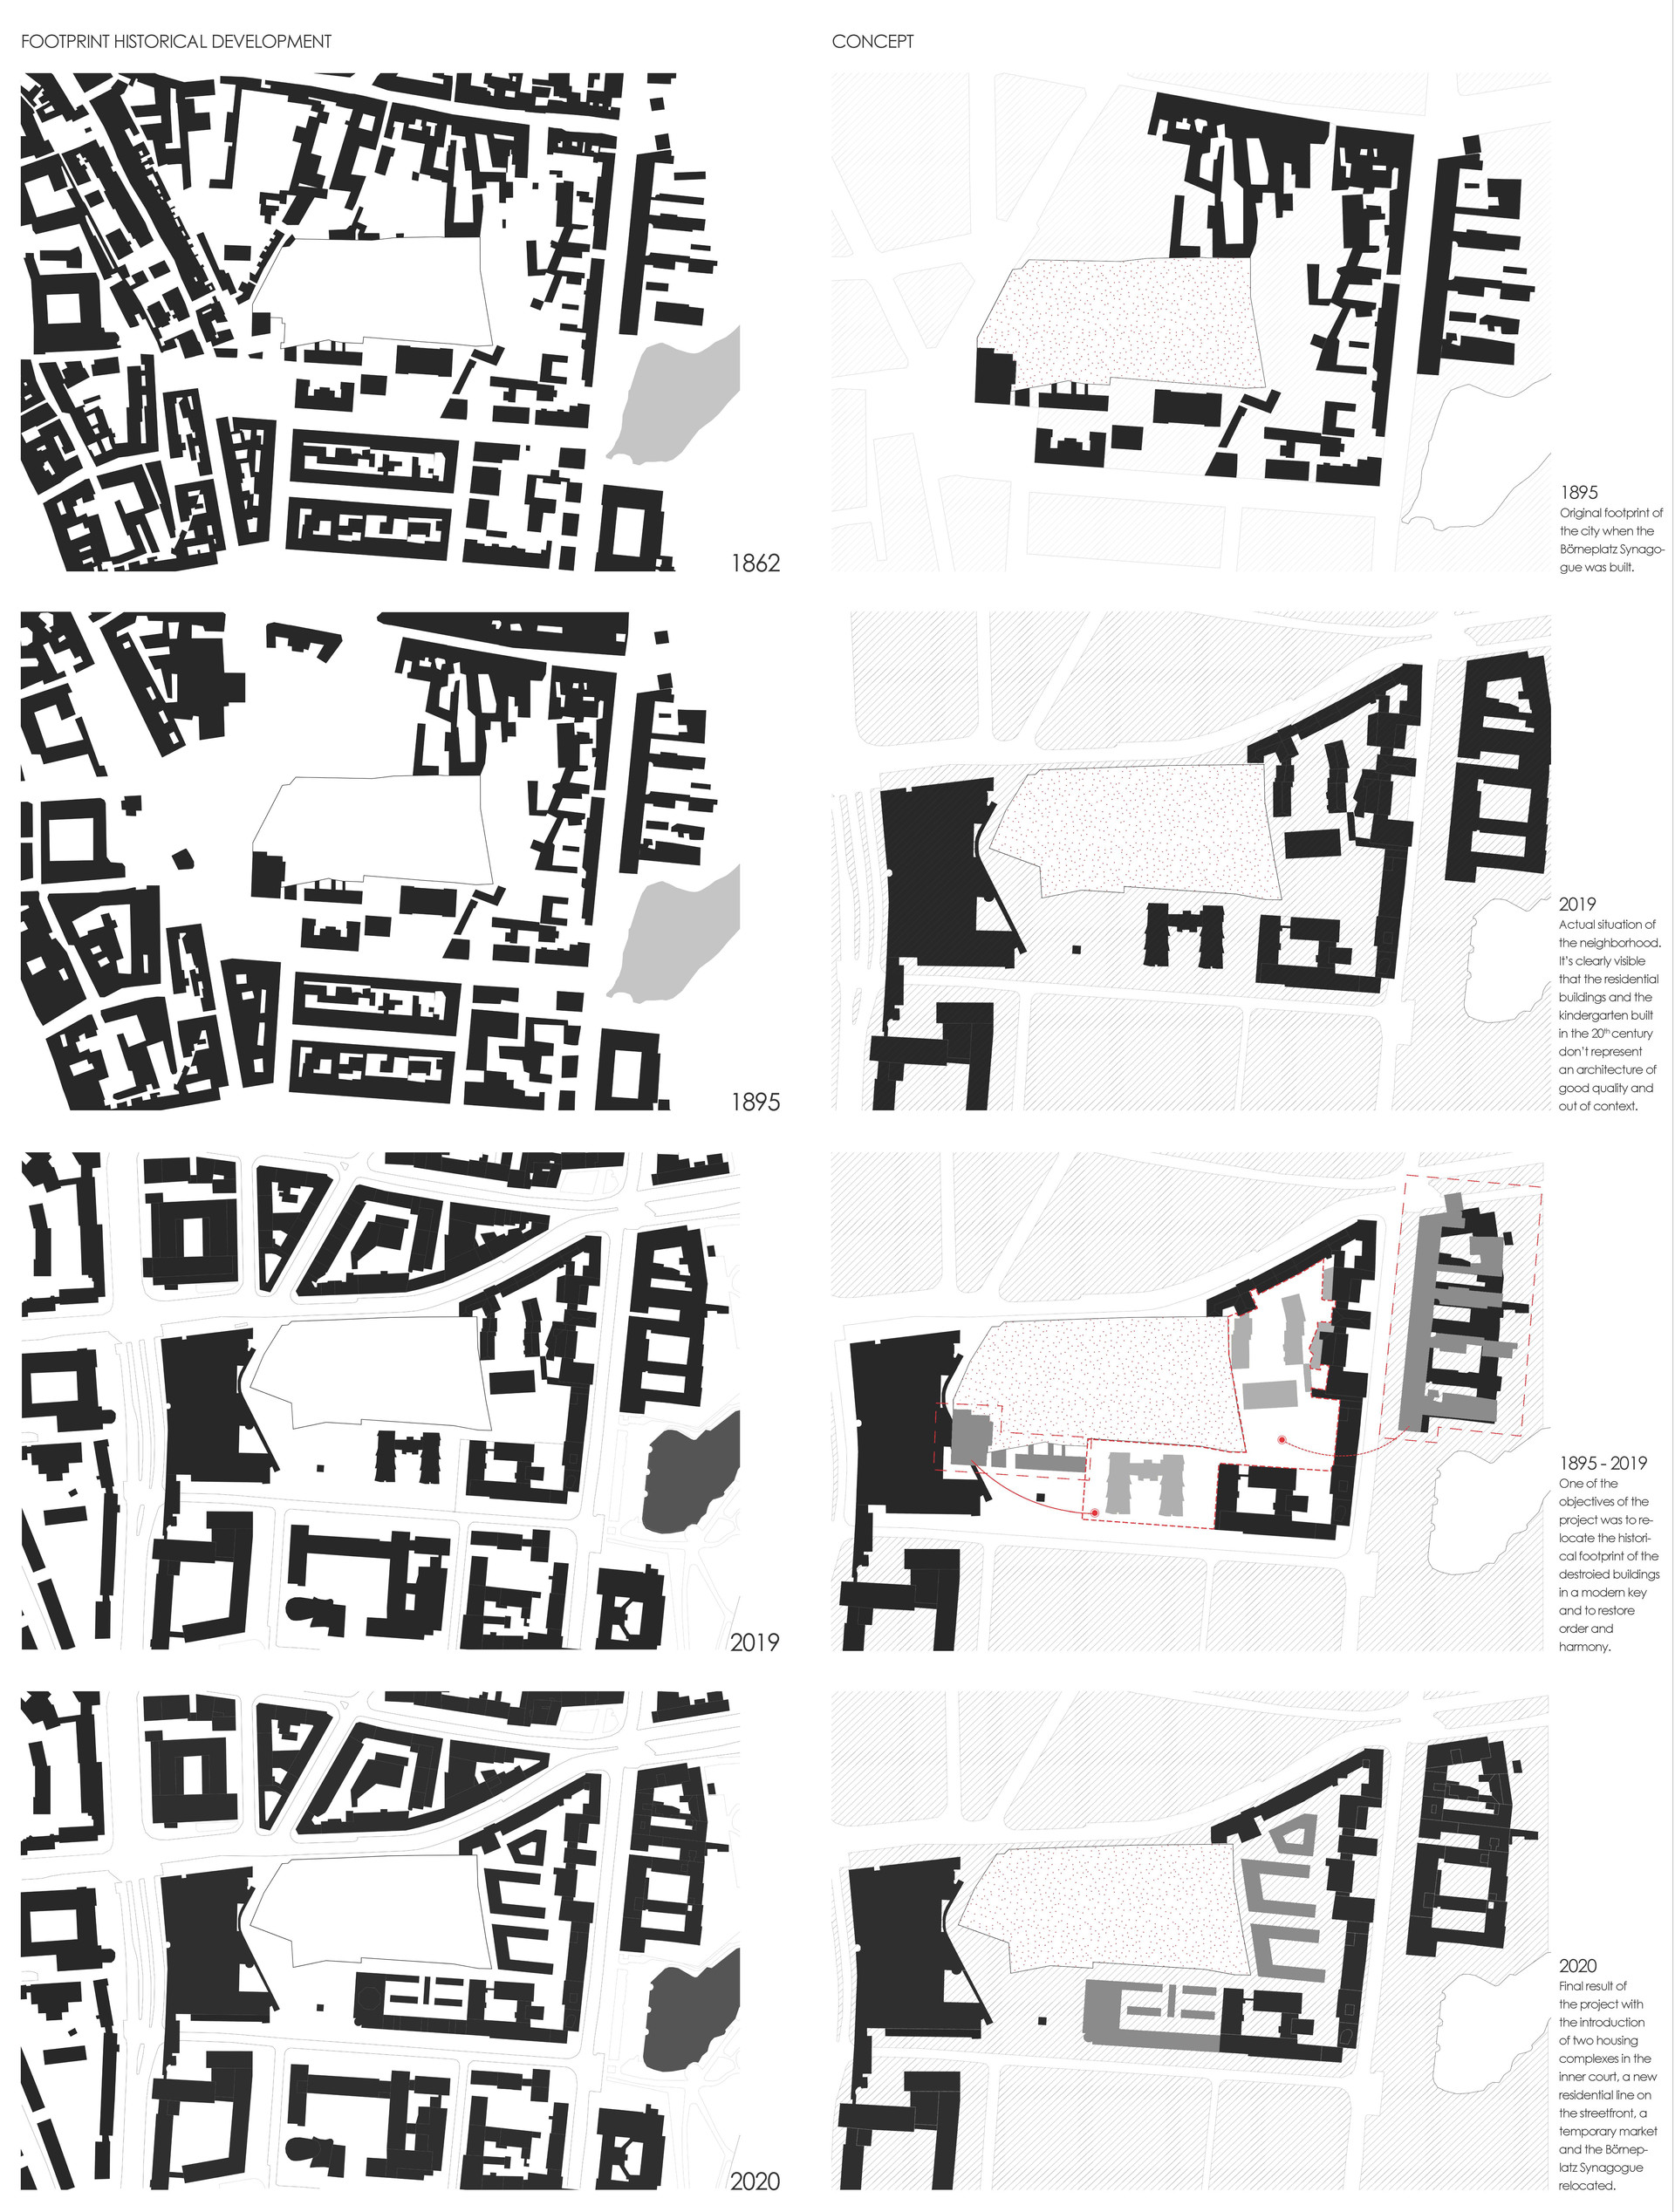 Design Reference Diagram - Urban Scale